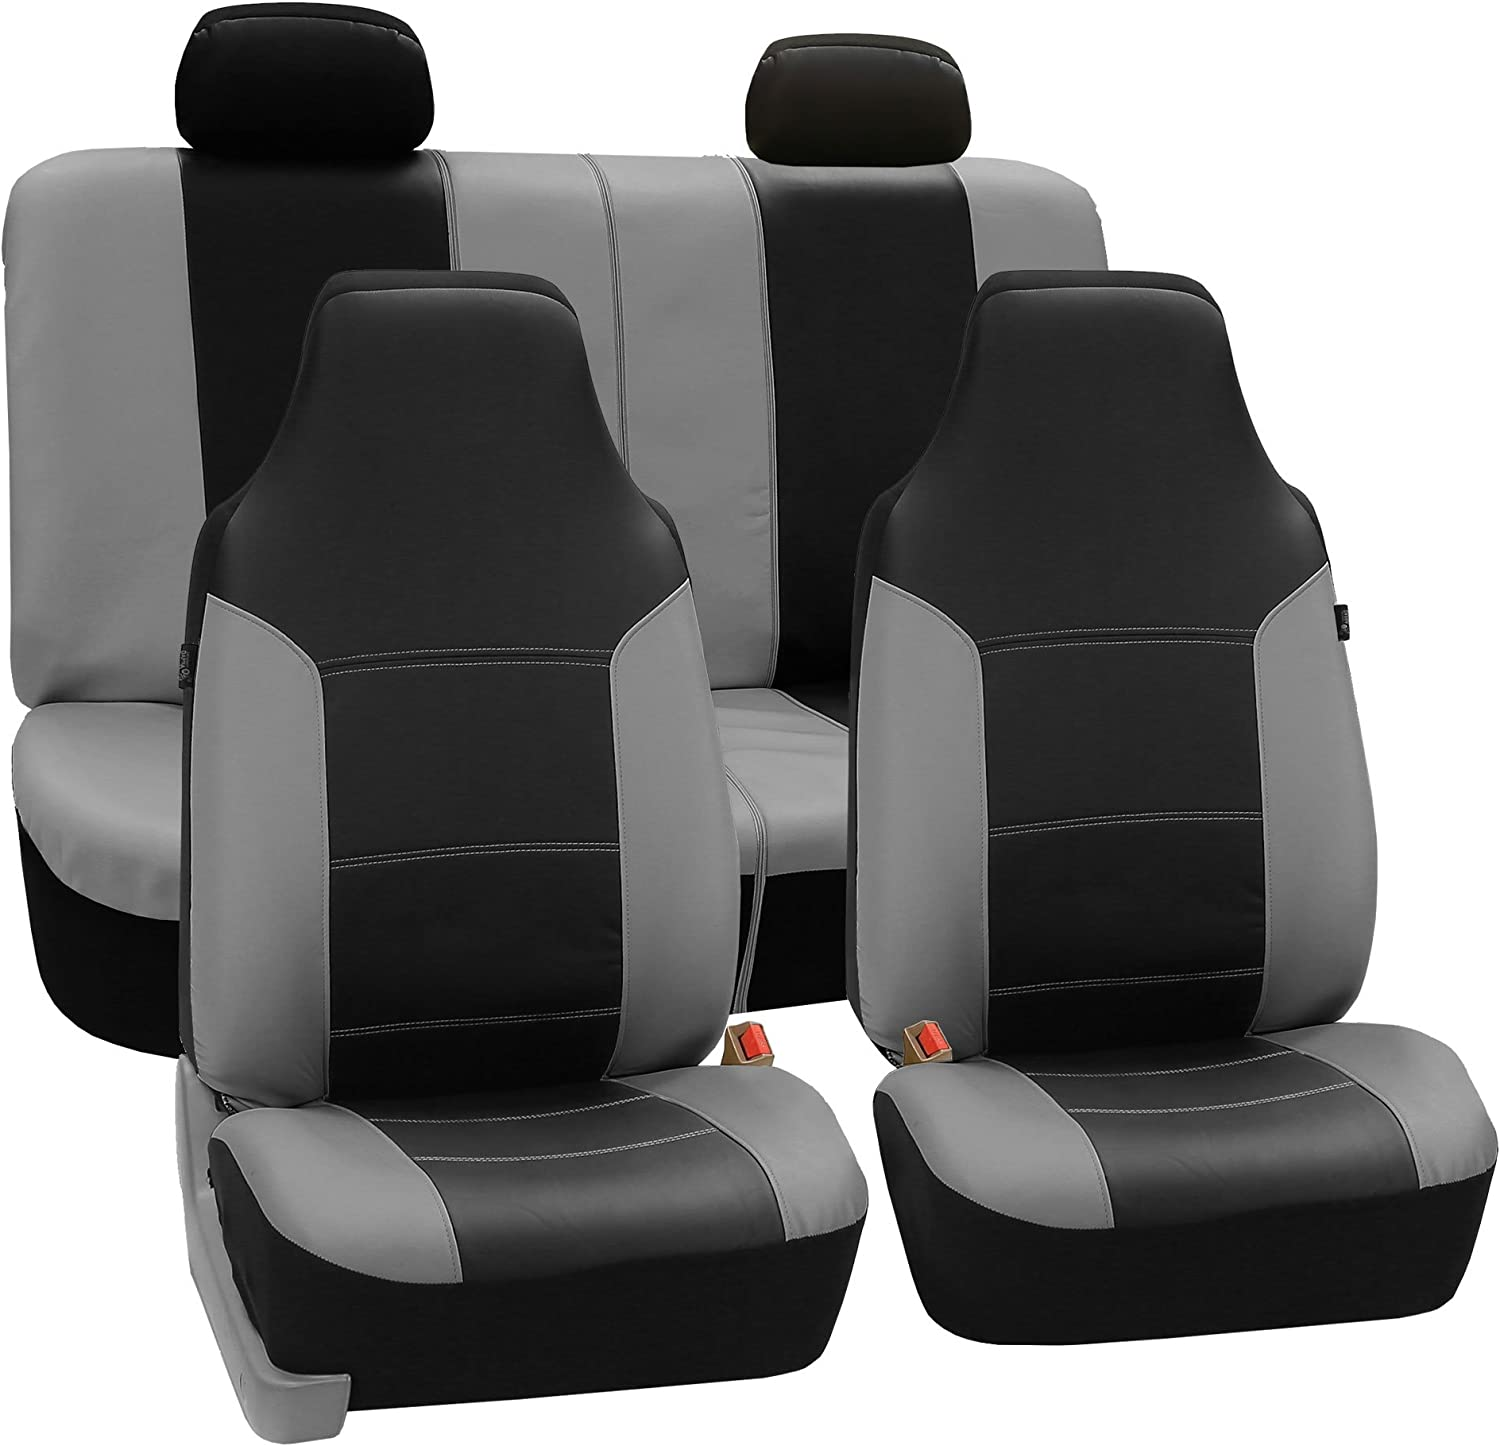 FH GROUP FH-PU103114 High Back Royal PU Leather Car Seat Covers Airbag & Split Gray/Black-Fit Most Car, Truck, SUV, or Van